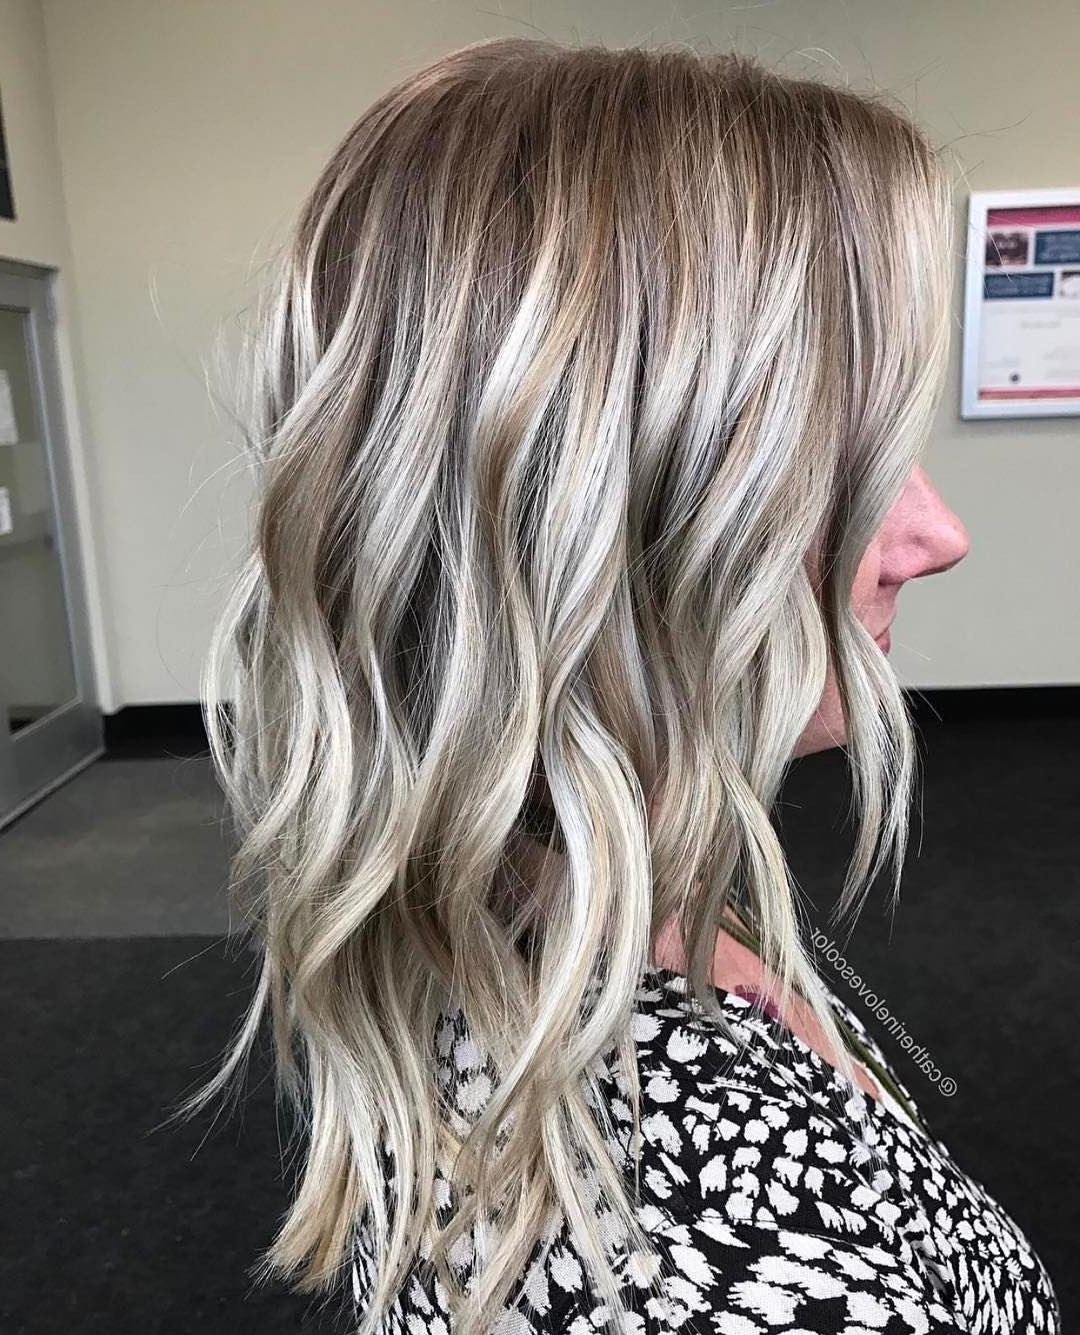 Best And Newest Blunt Cut White Gold Lob Blonde Hairstyles Within 20 Adorable Ash Blonde Hairstyles To Try: Hair Color Ideas  (View 10 of 20)